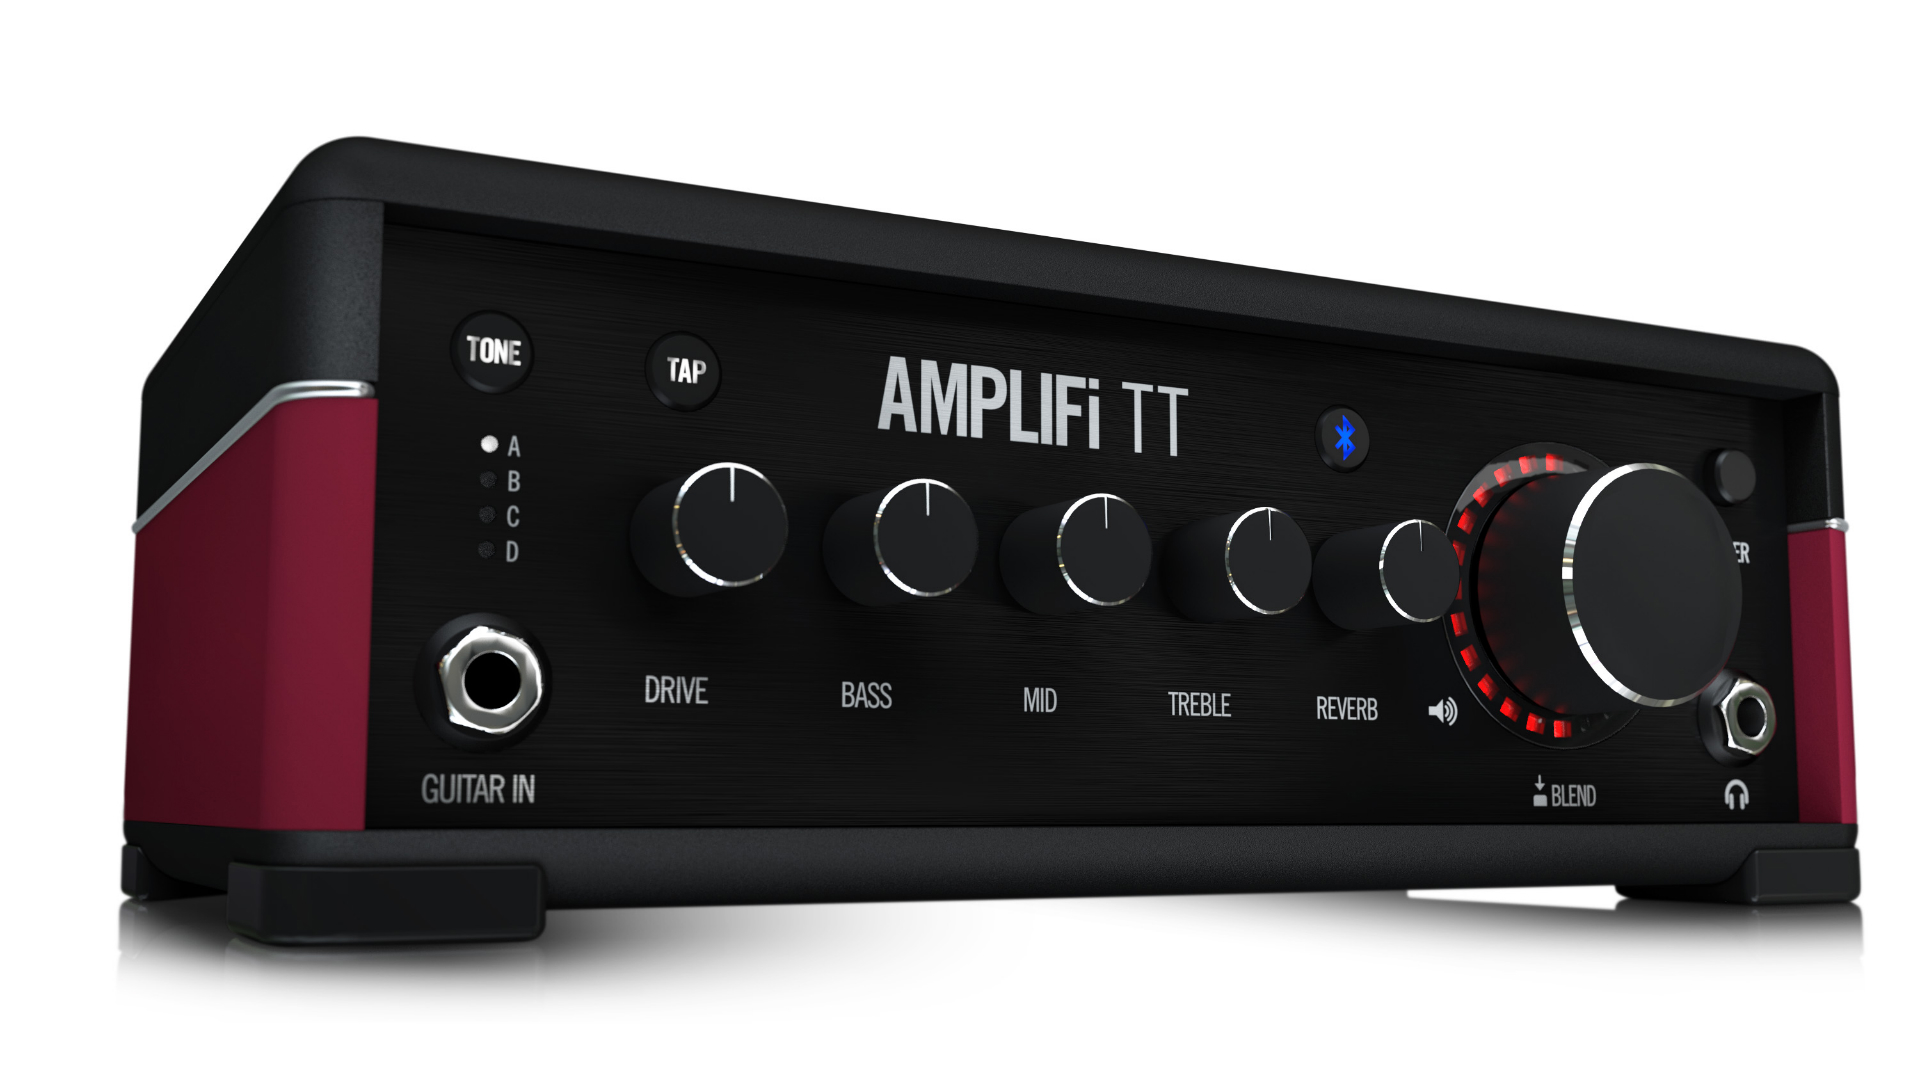 Camera Exterieur Home By Sfr Line 6 Unveils Amplifi Tt Bluetooth Guitar Amp And Streaming